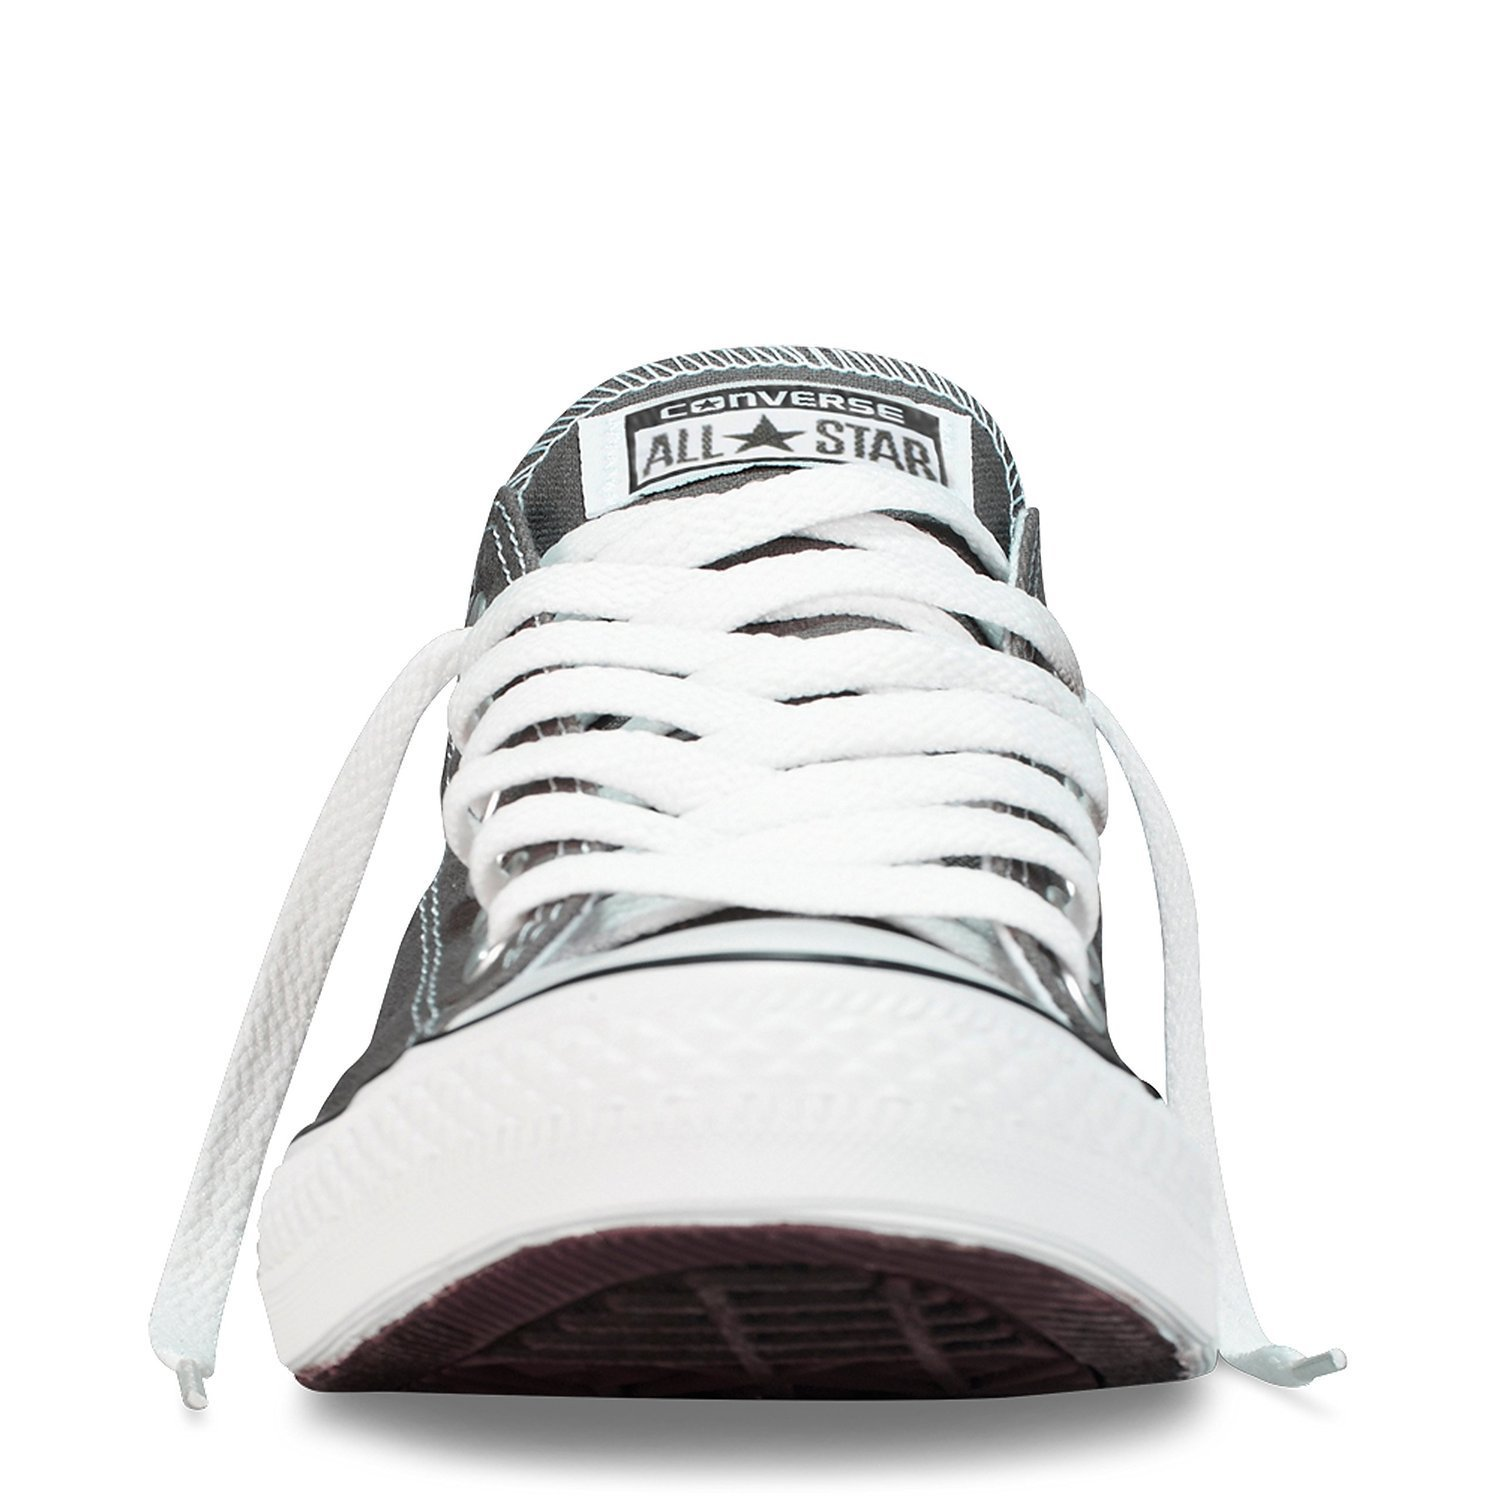 Converse Chuck Taylor All Star Slip Sneaker Gray 1X228, Size 4 Mens, 6 Womens by Converse (Image #3)